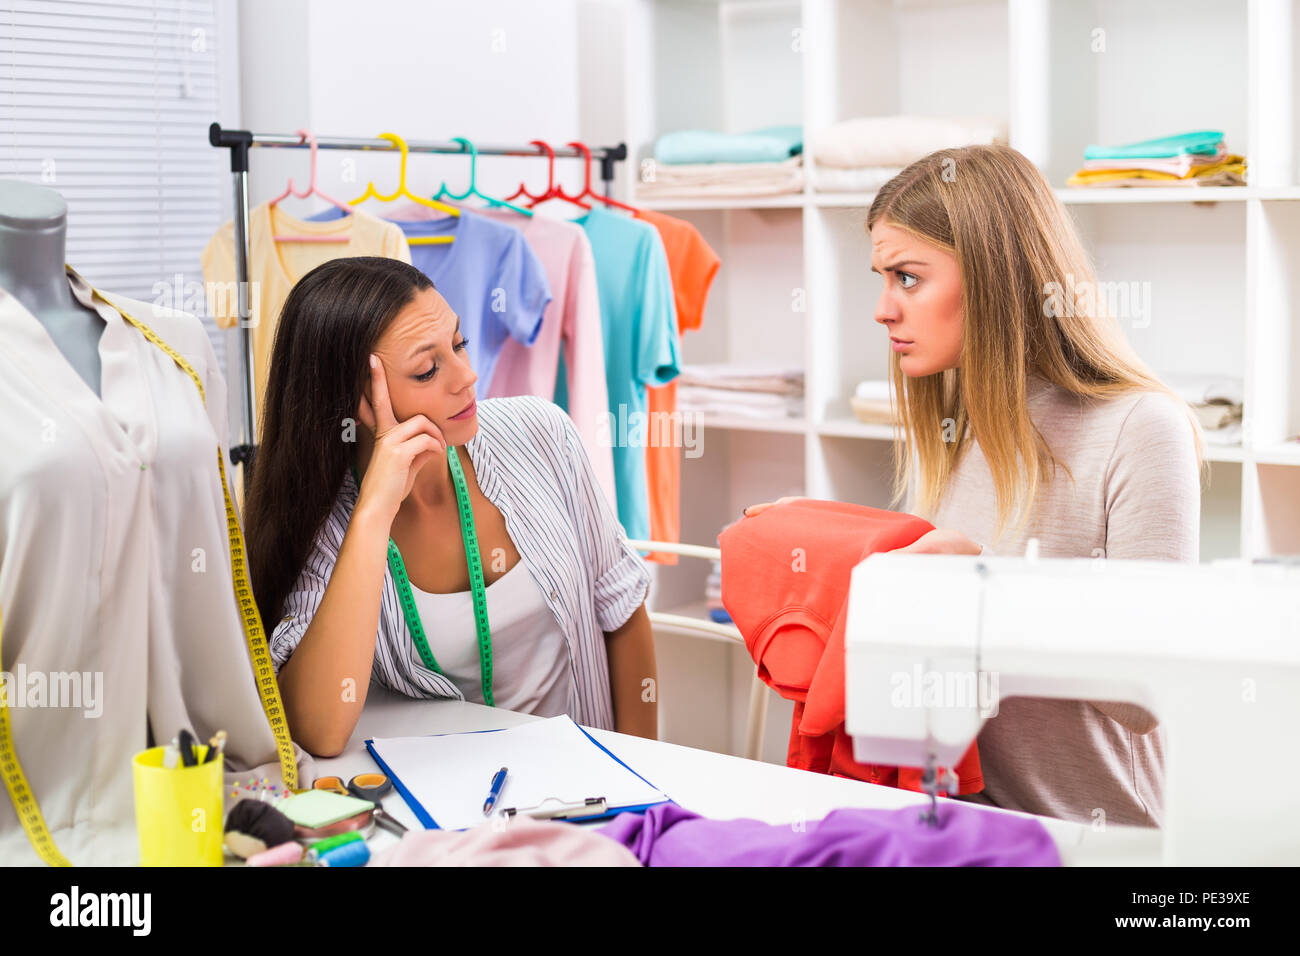 Unsatisfied customer and seamstress having conflict. - Stock Image